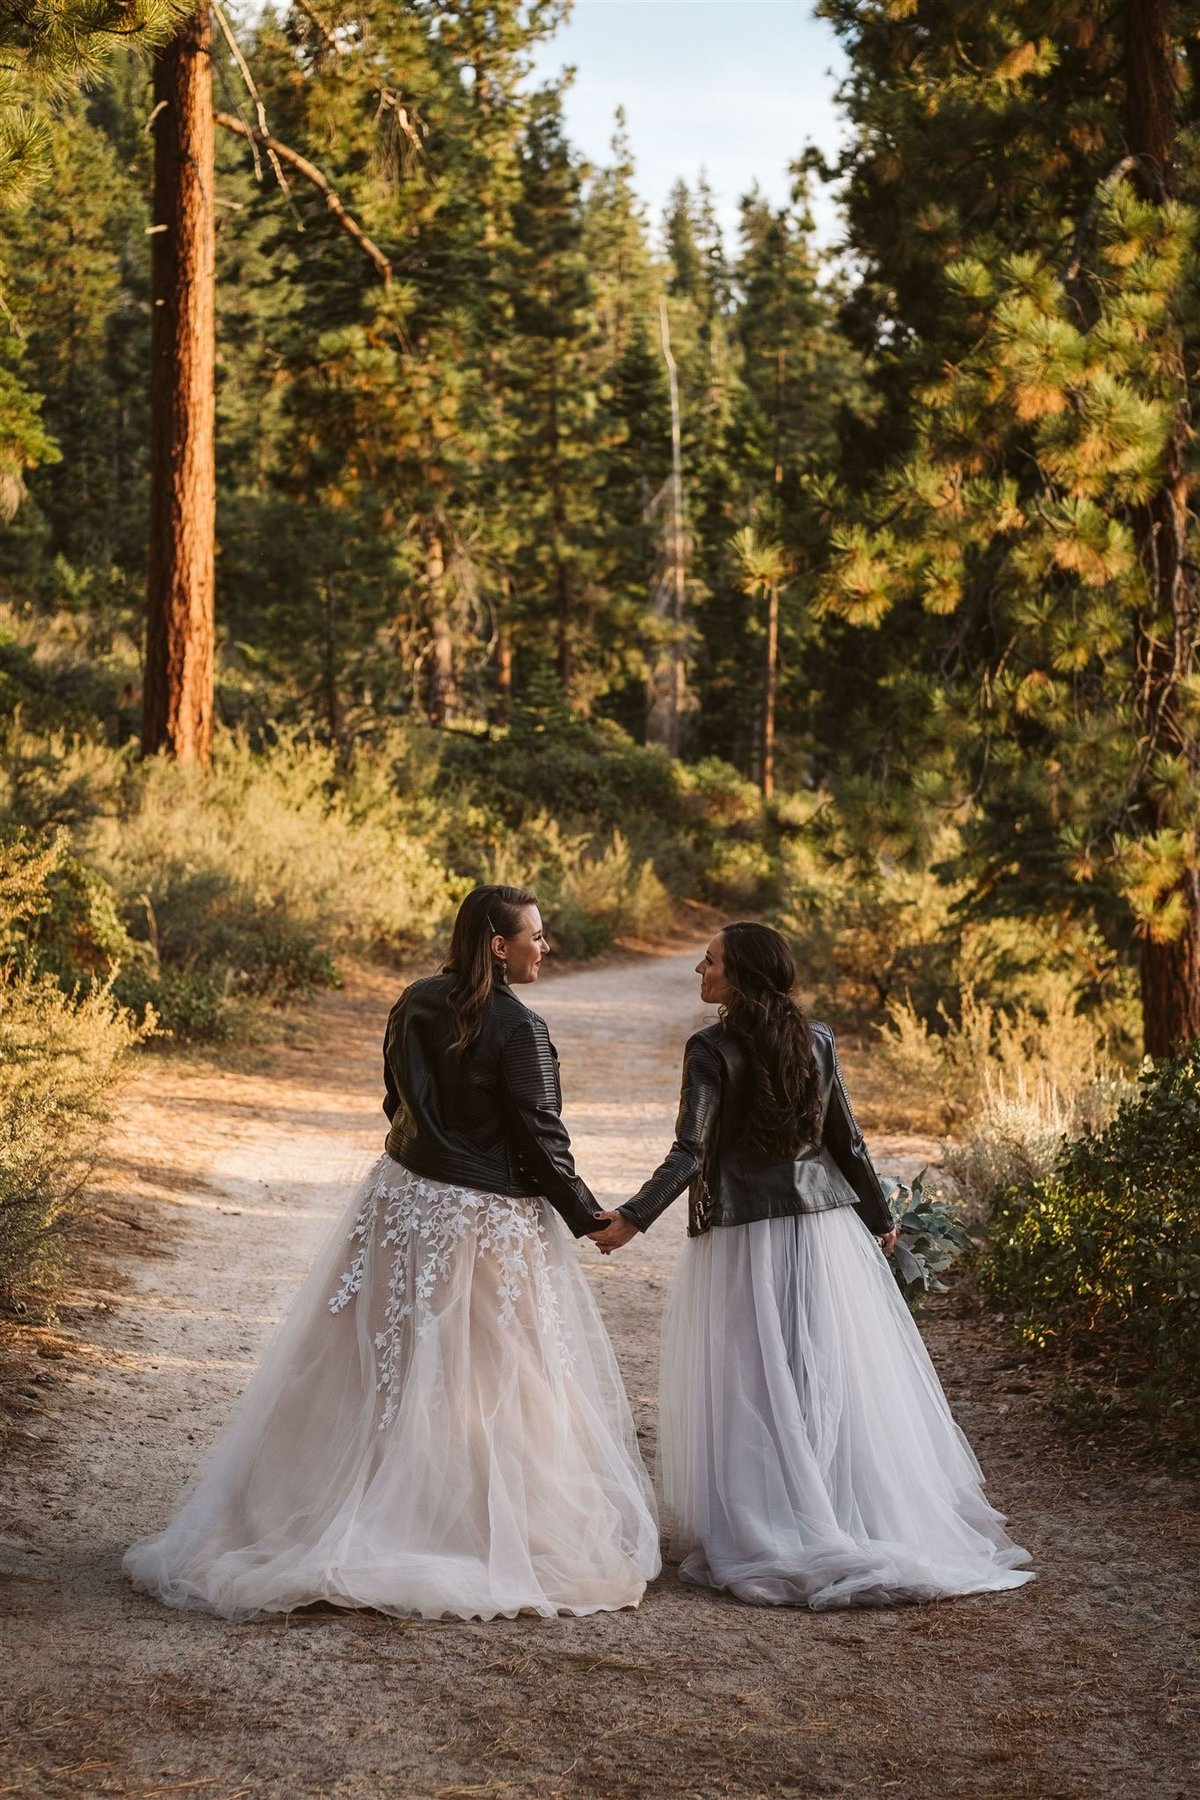 Two brides taking a stroll in the forest